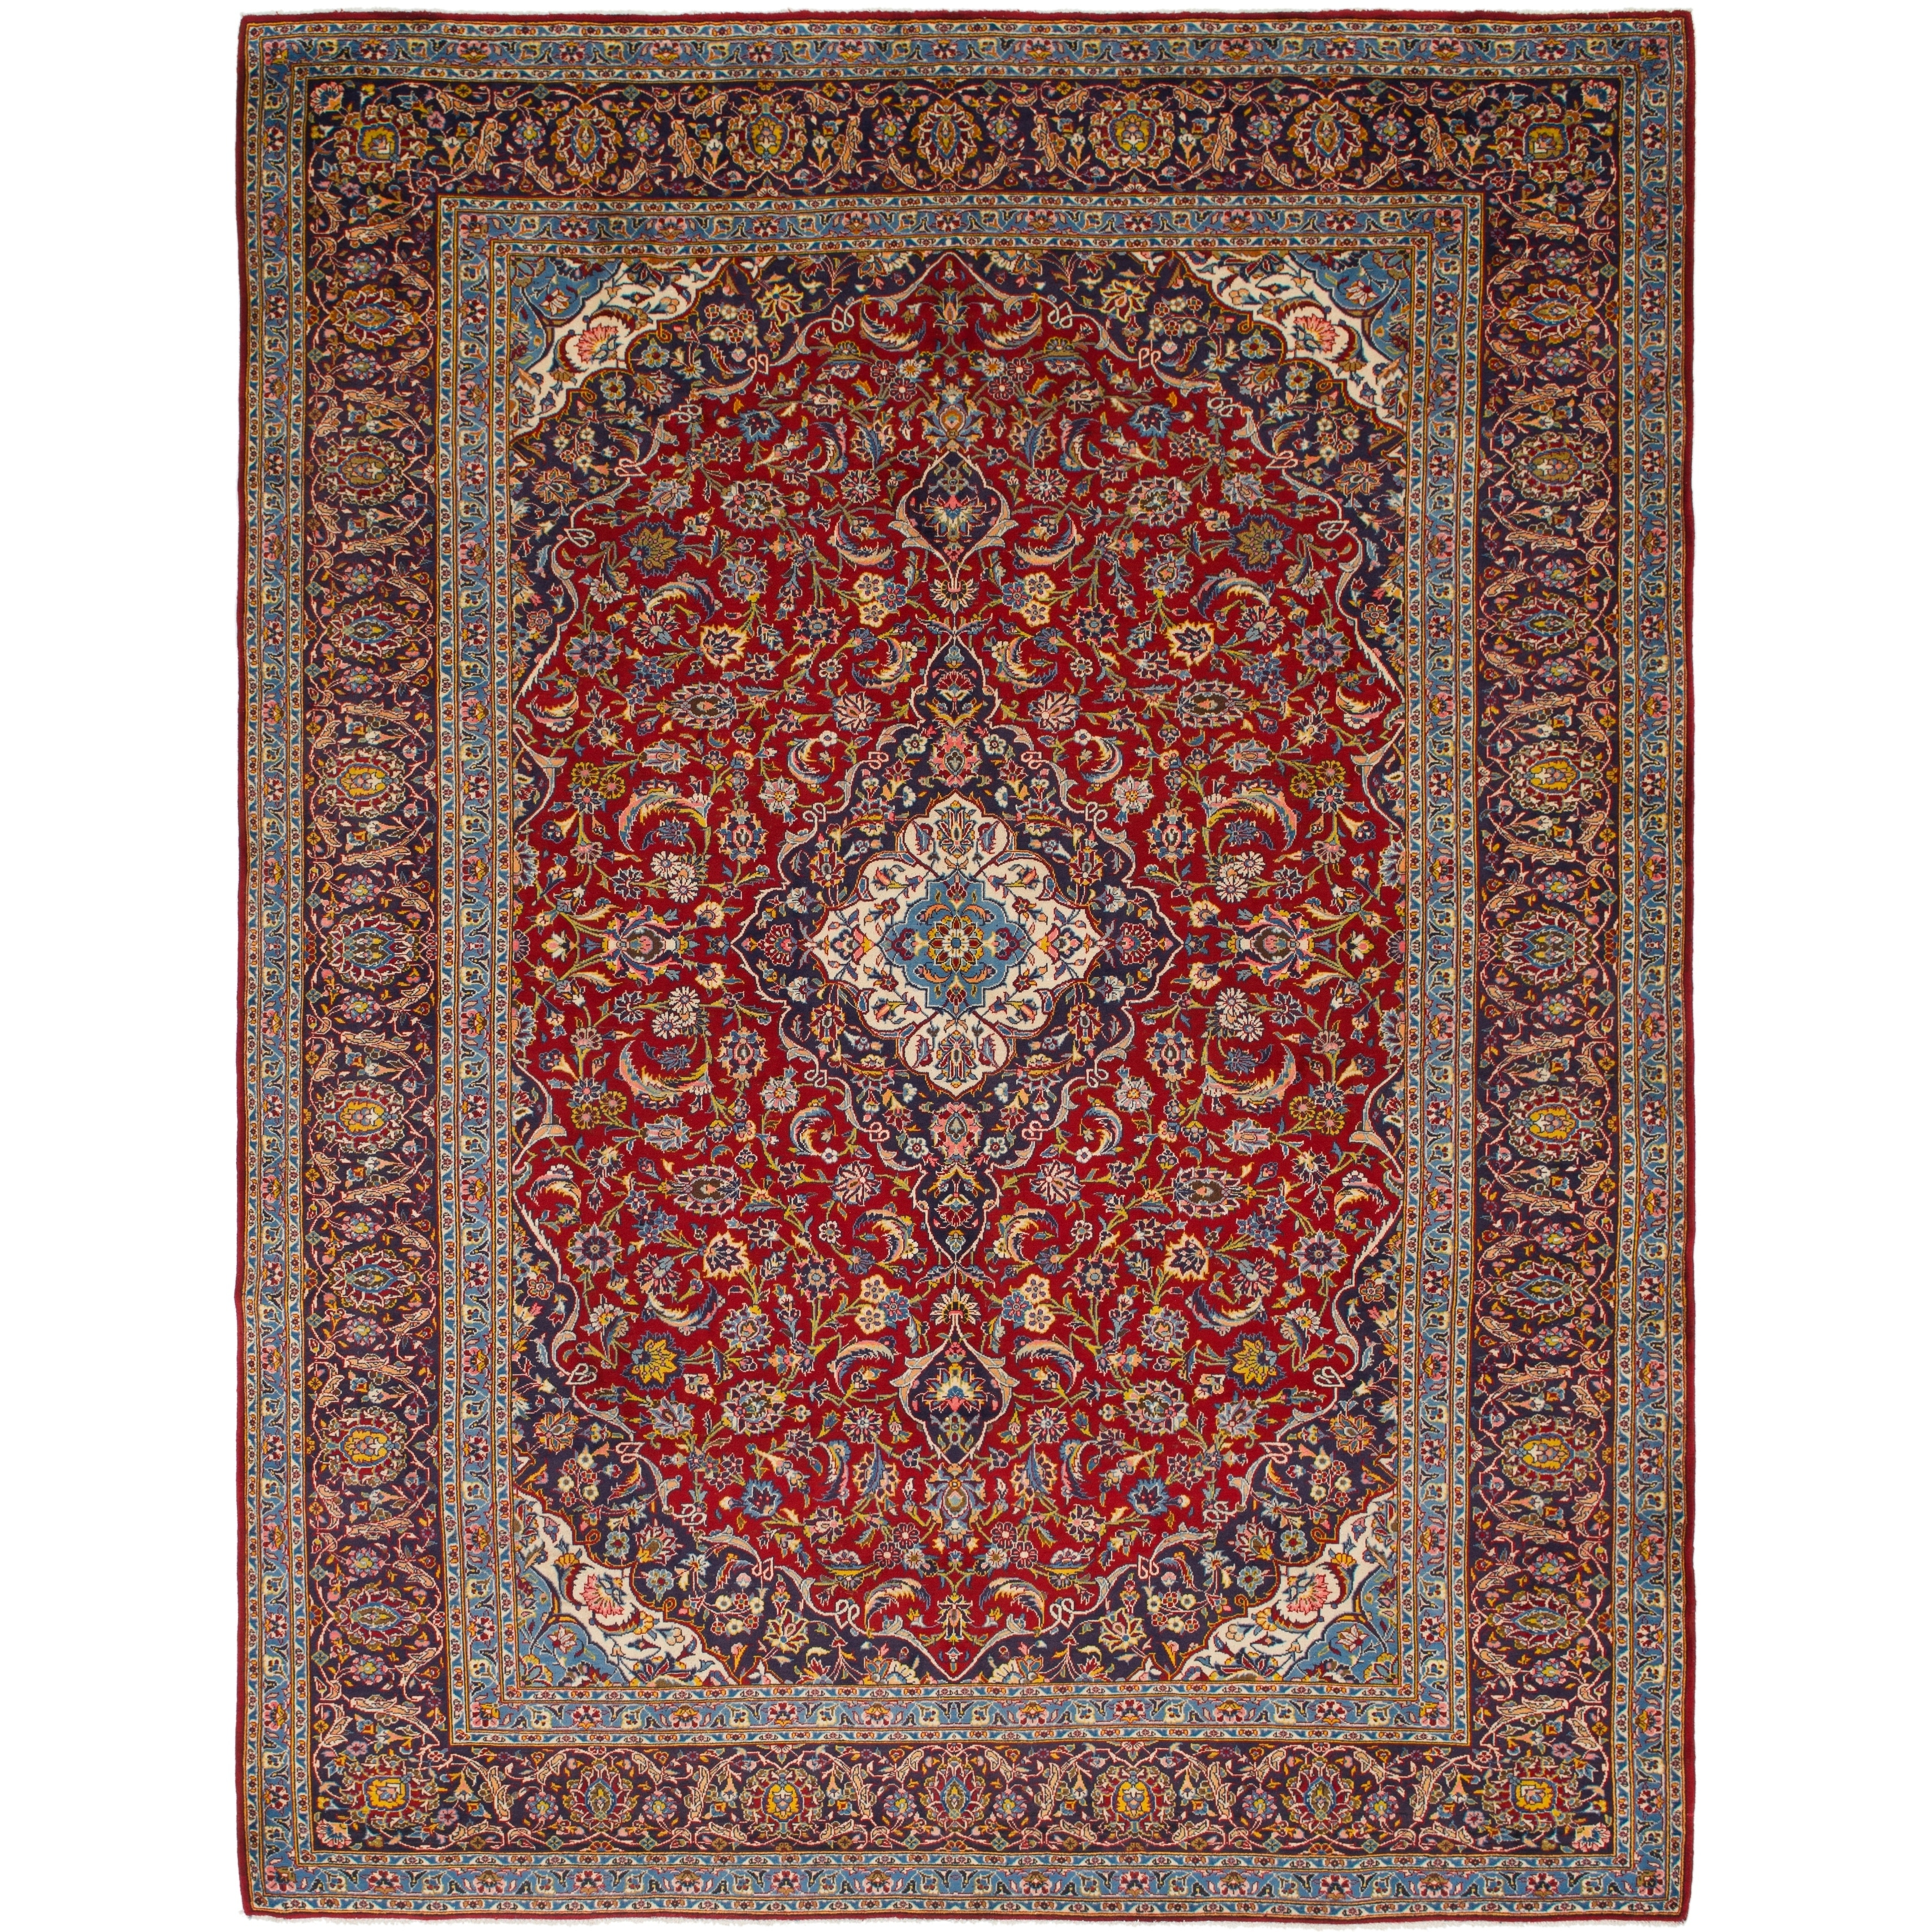 Hand Knotted Kashan Semi Antique Wool Area Rug - 10 x 13 2 (Red - 10 x 13 2)